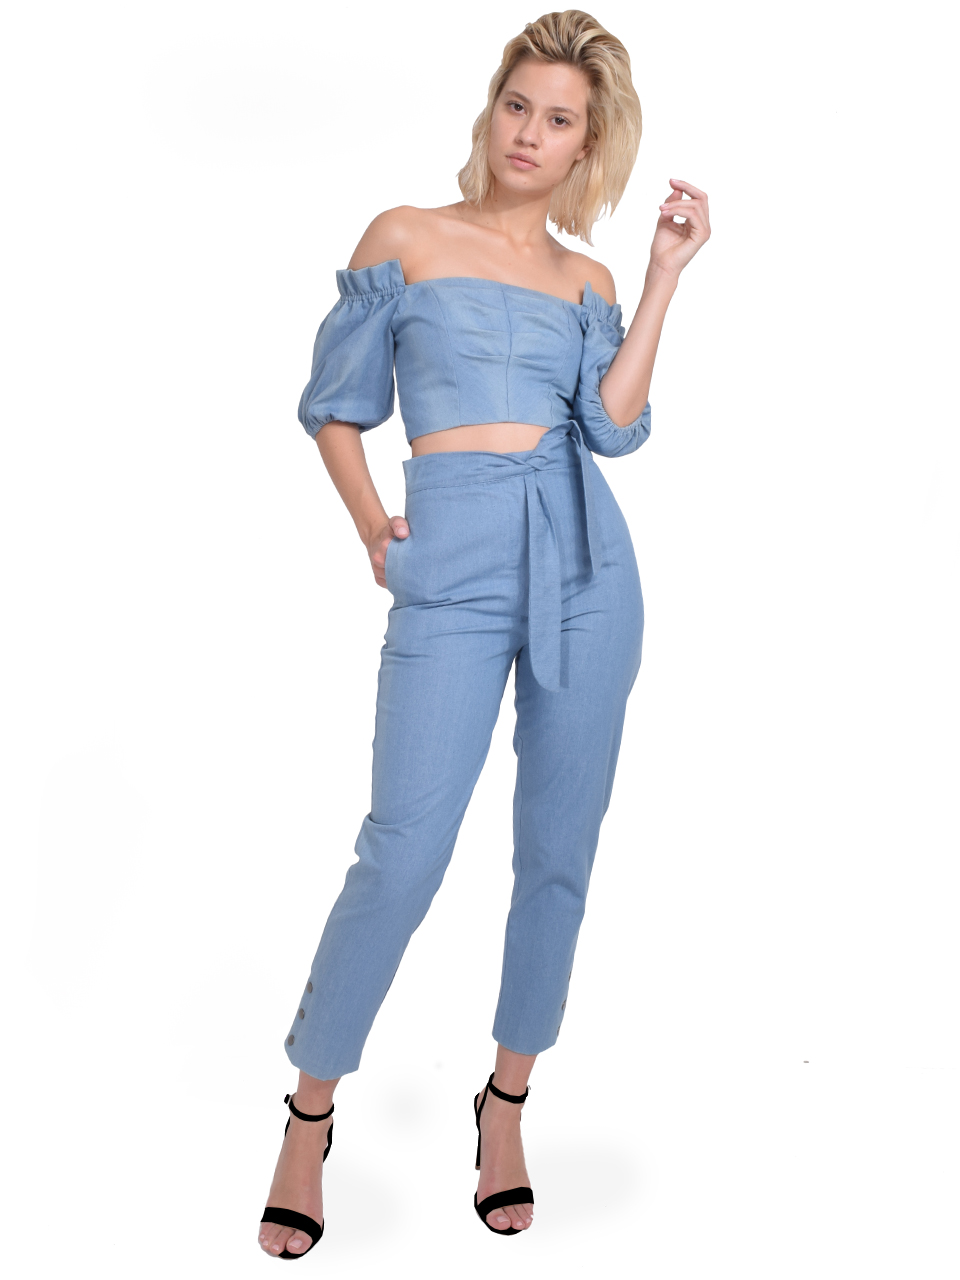 Karina Grimaldi Martha Denim Top Full Outfit